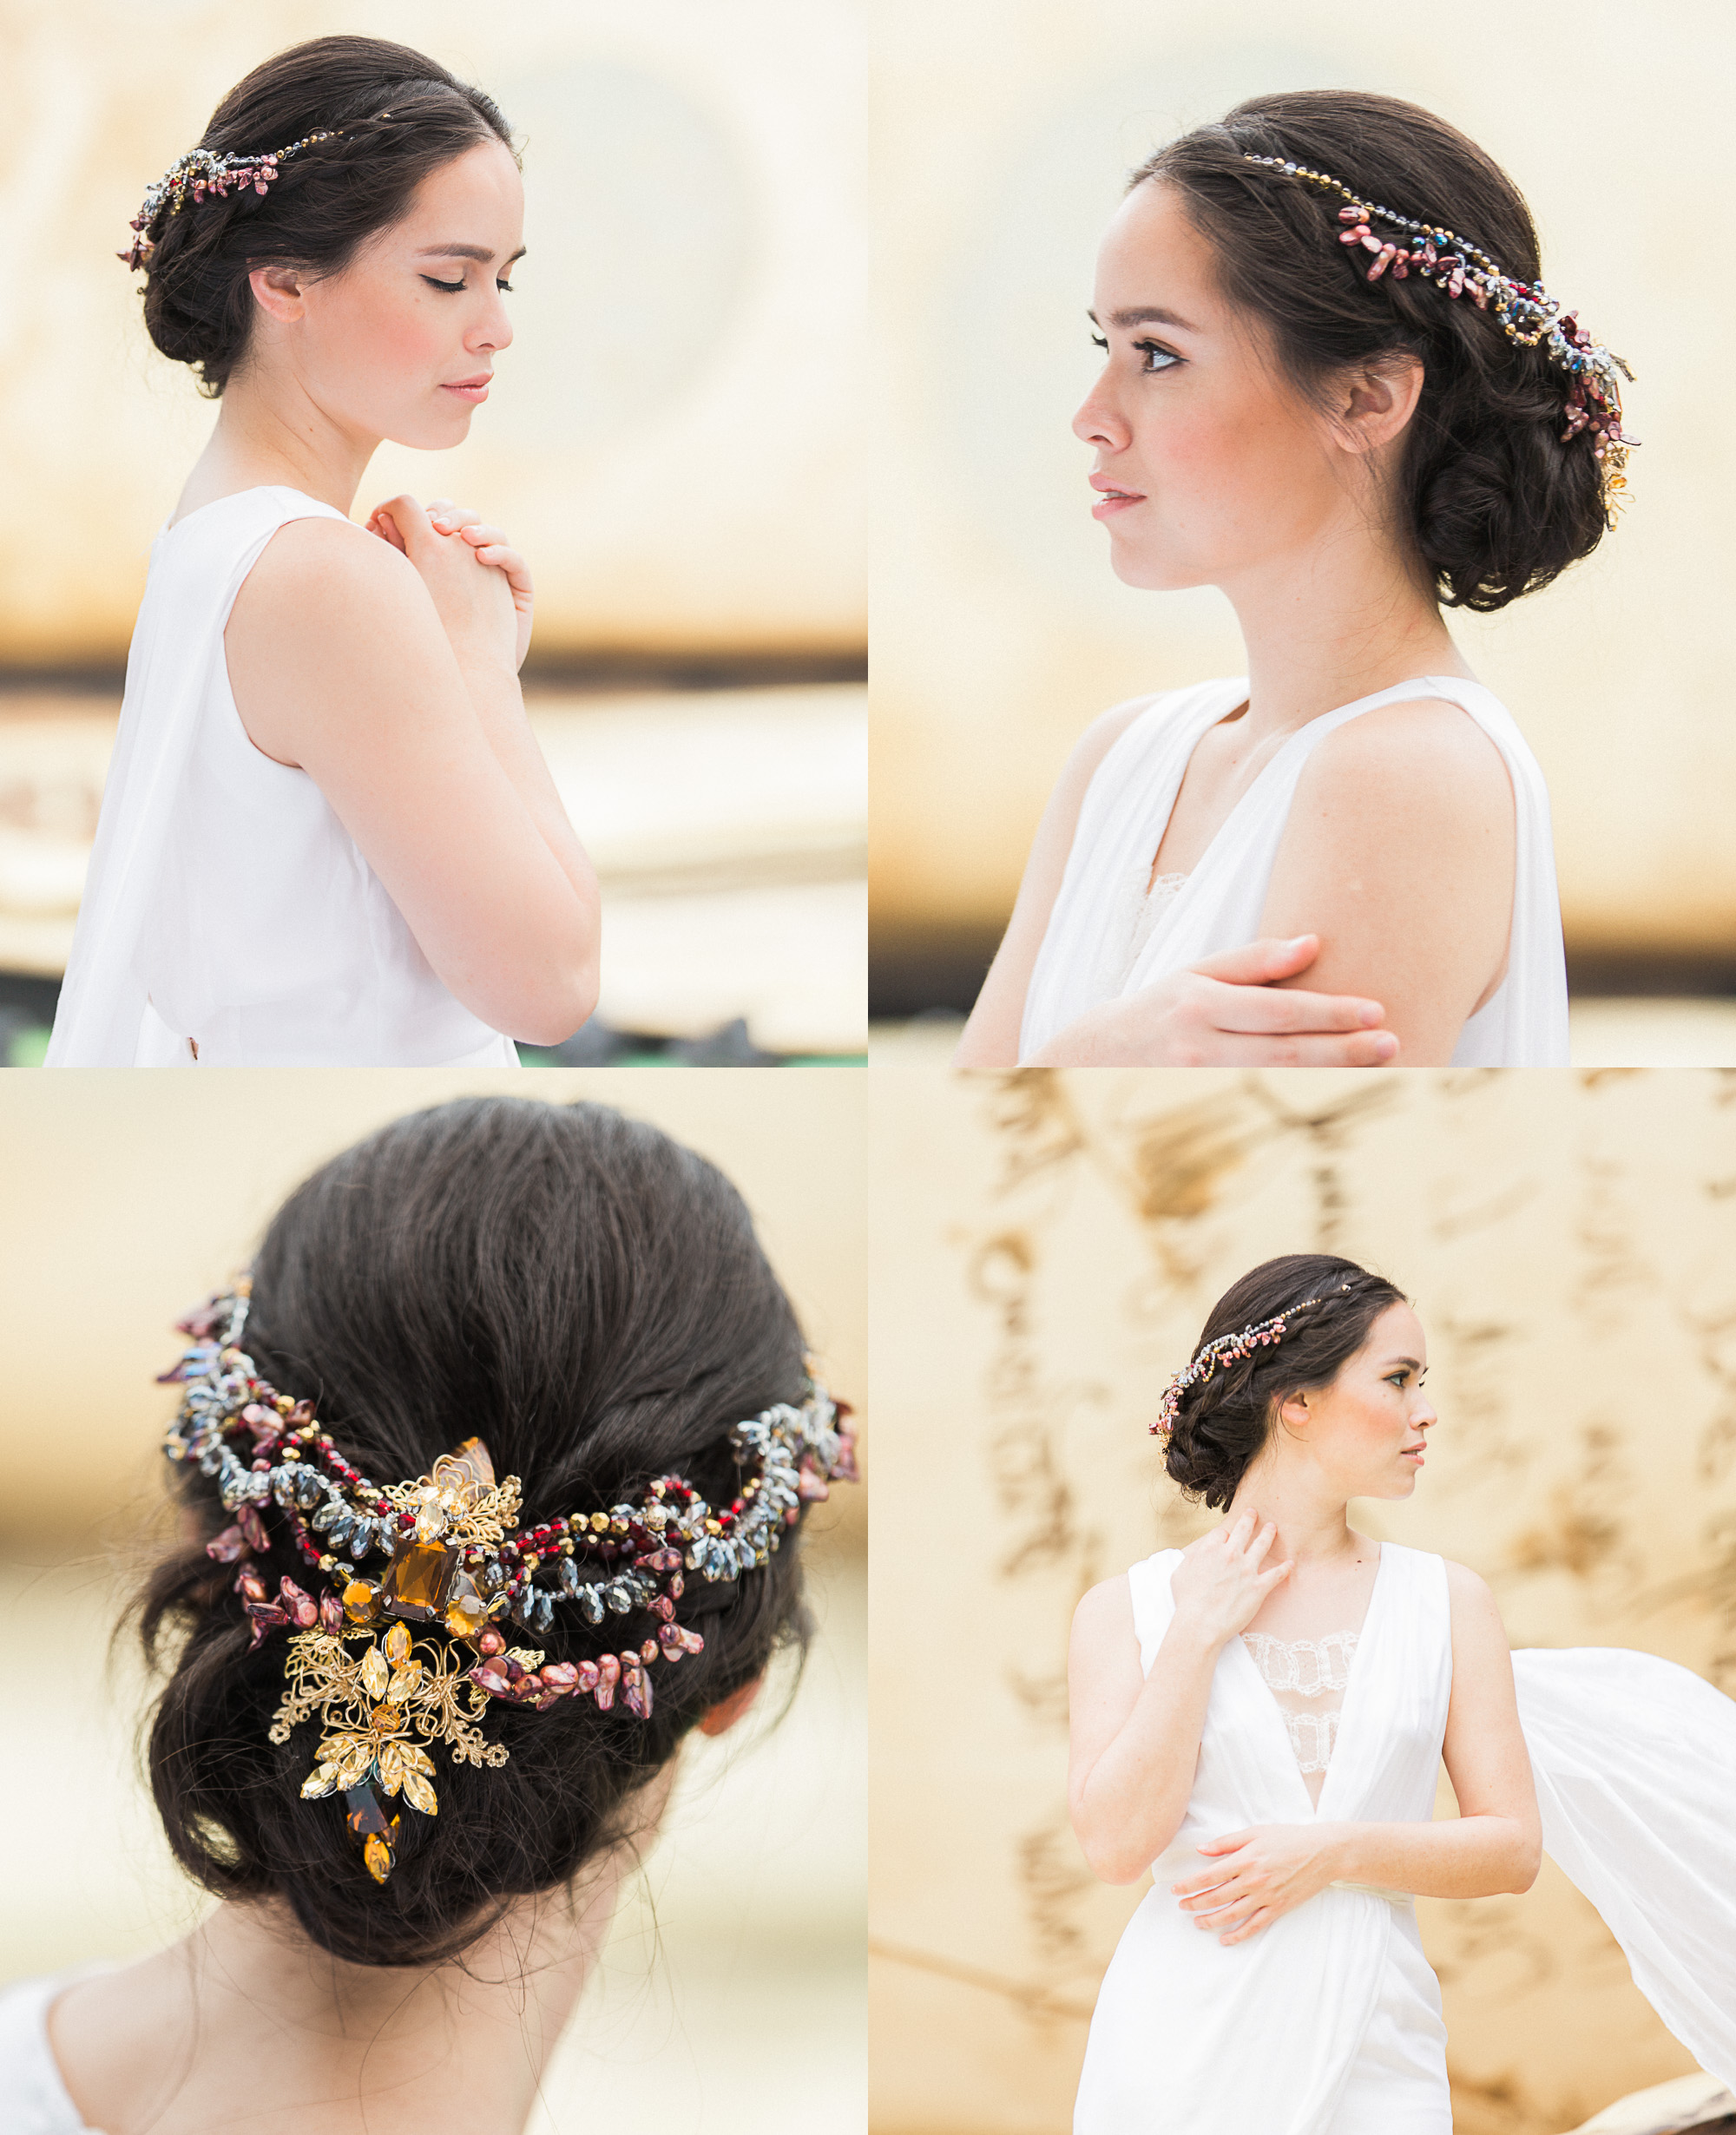 chen sands editorial bridal shoot shakespeare the wedding scoop singapore collage 2.jpg